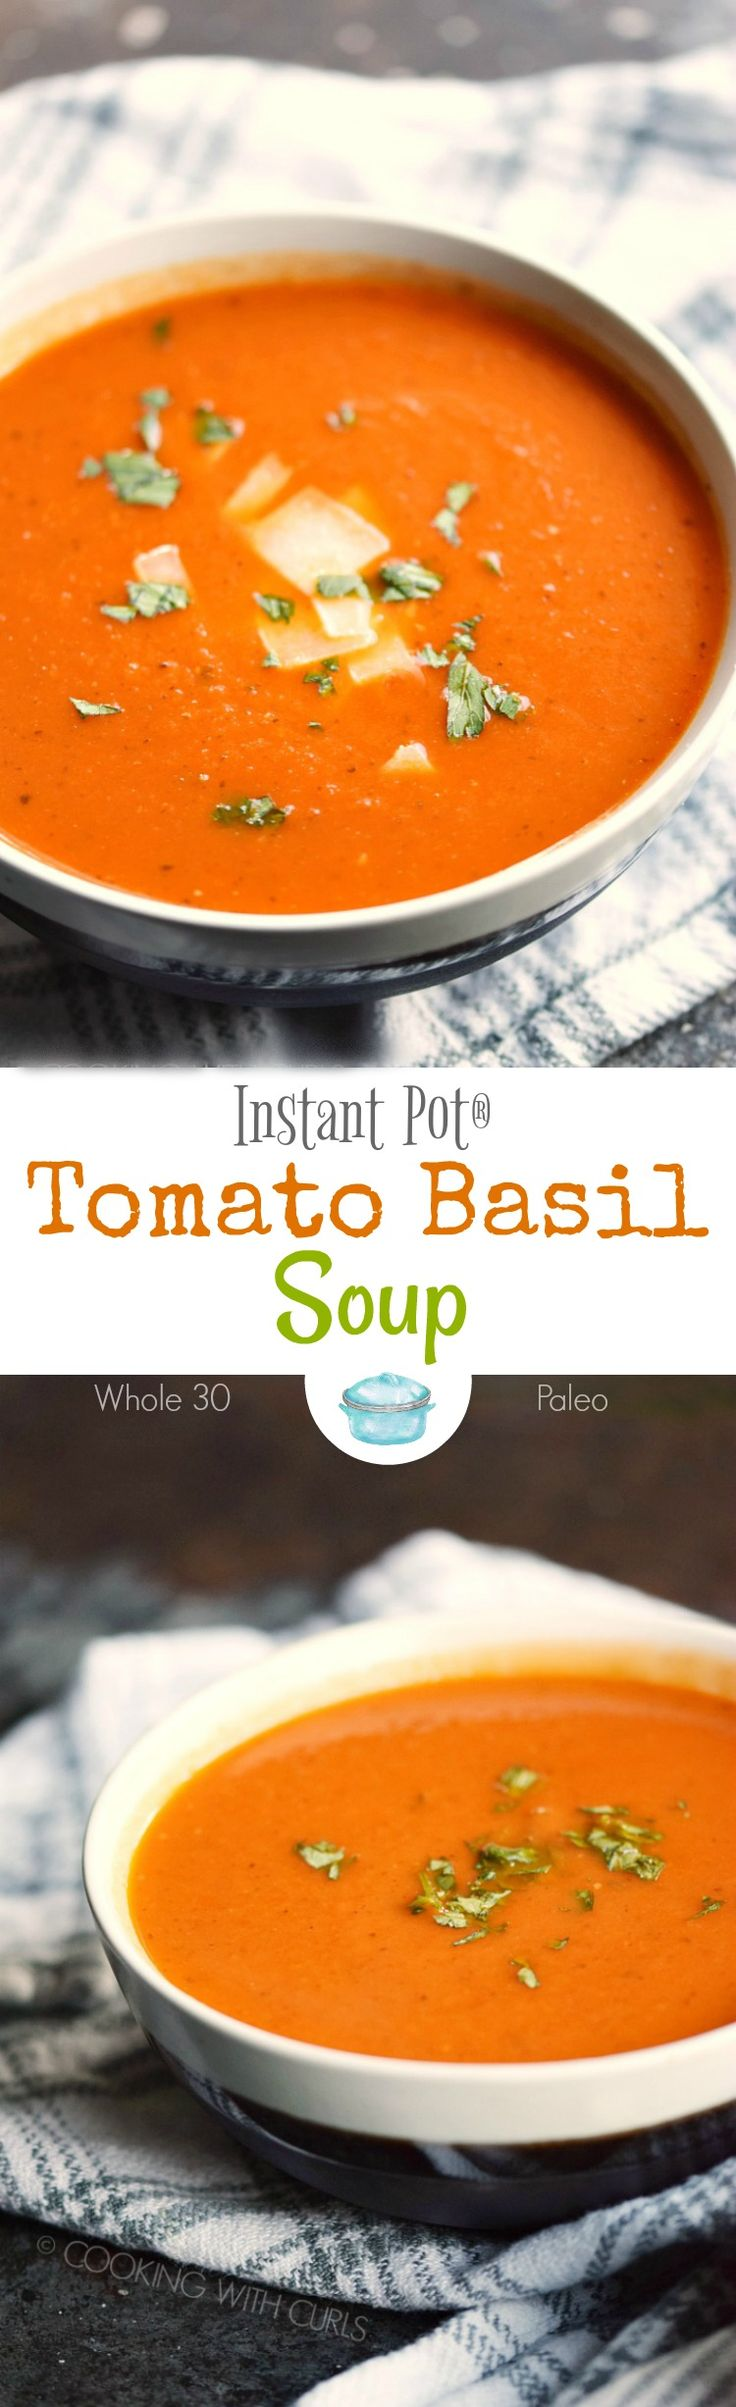 This Instant Pot Tomato Basil Soup is a quick and easy meal to prepare any night of the week!  It is also Whole 30 and Paleo compliant for health conscience families. © COOKING WITH CURLS